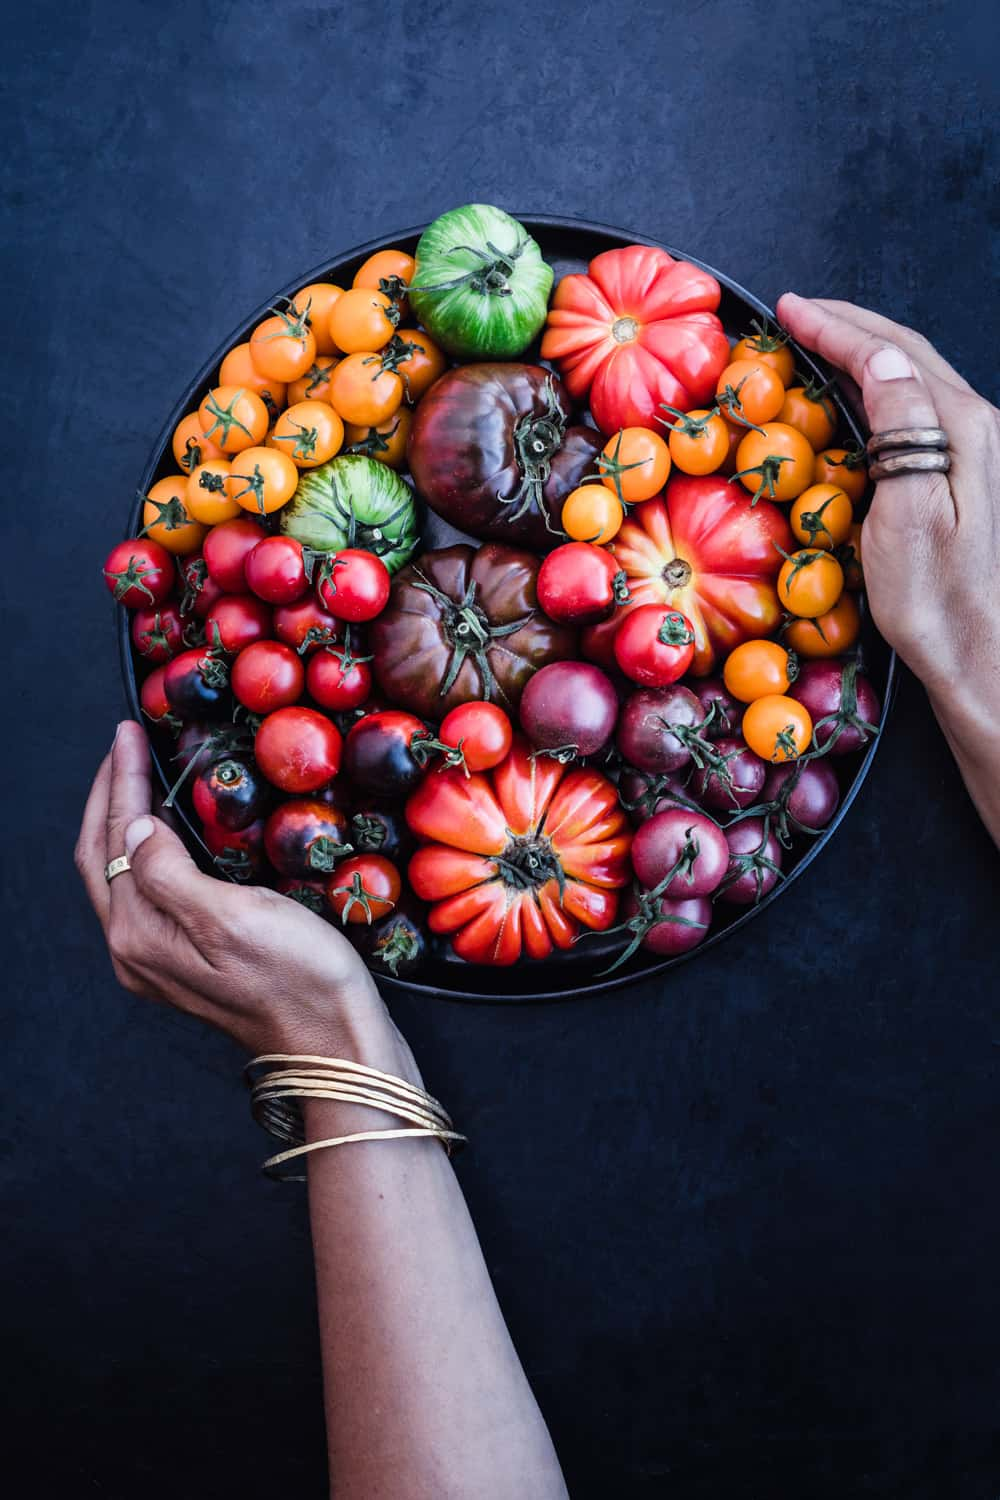 Daniela Gerson holding a black plate filled with rainbow tomatoes. They are all different varieties of seasonal heirloom tomatoes.